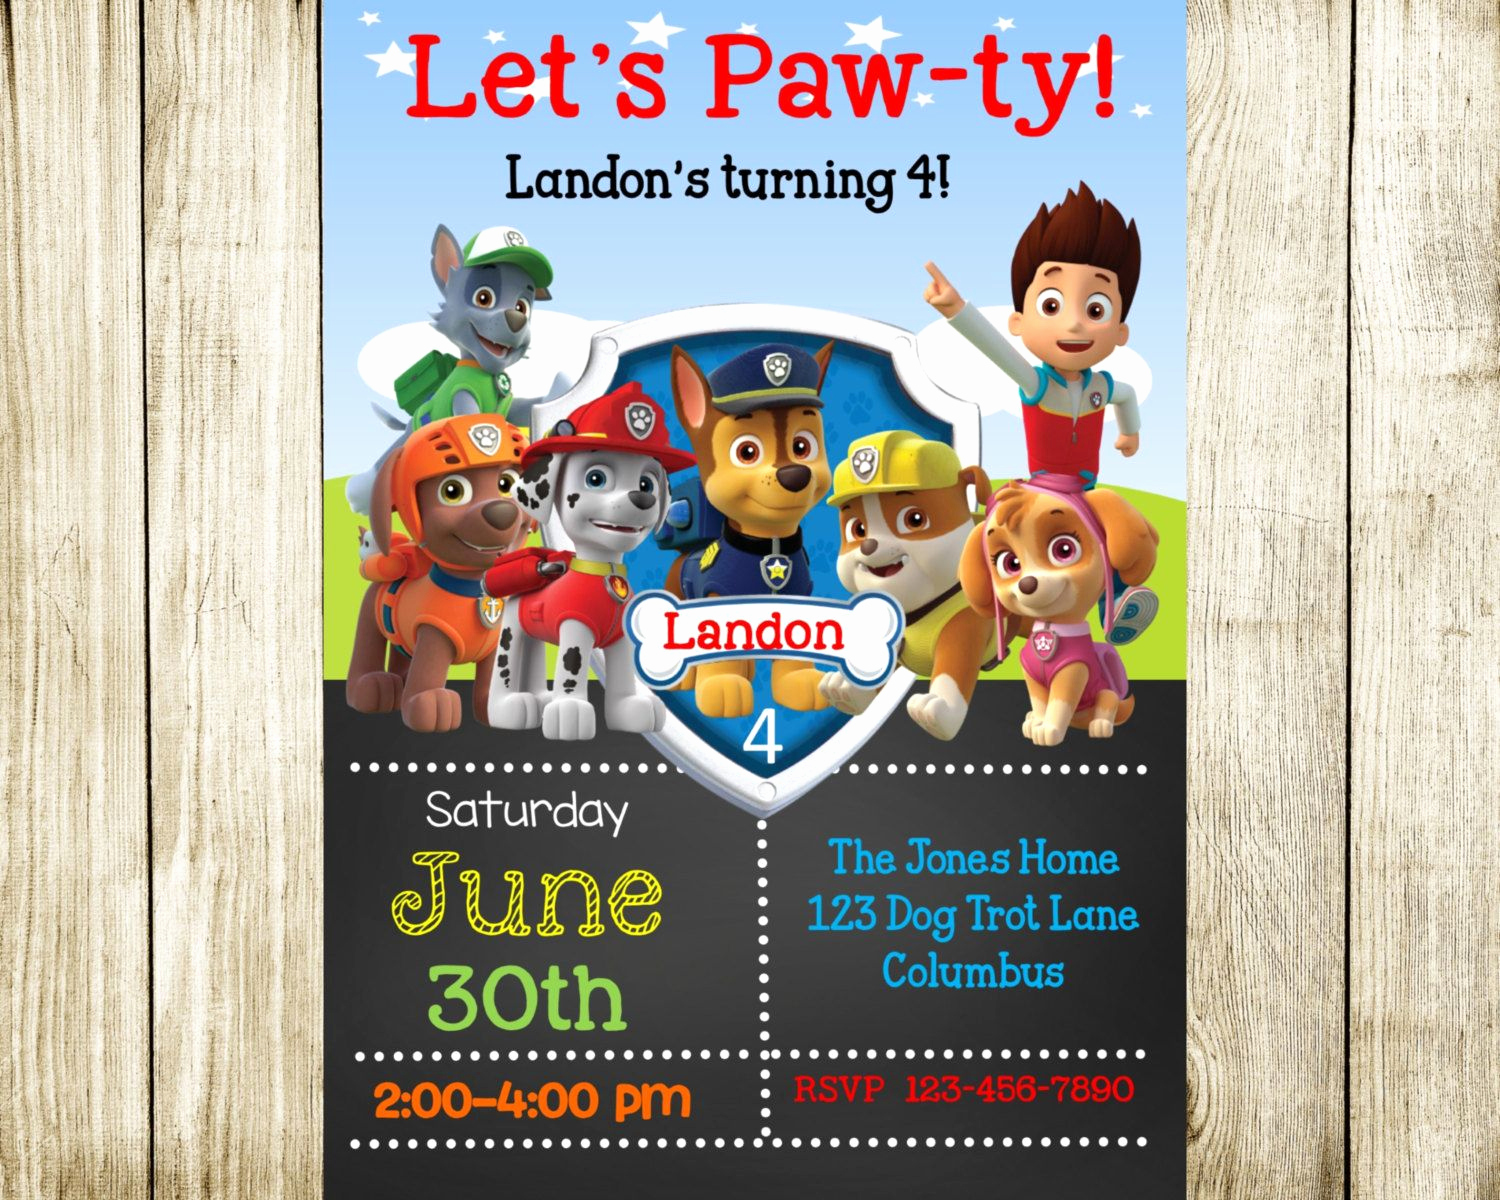 Paw Patrol Invitation Template Free Elegant Paw Patrol Birthday Paw Patrol Invitation Birthday